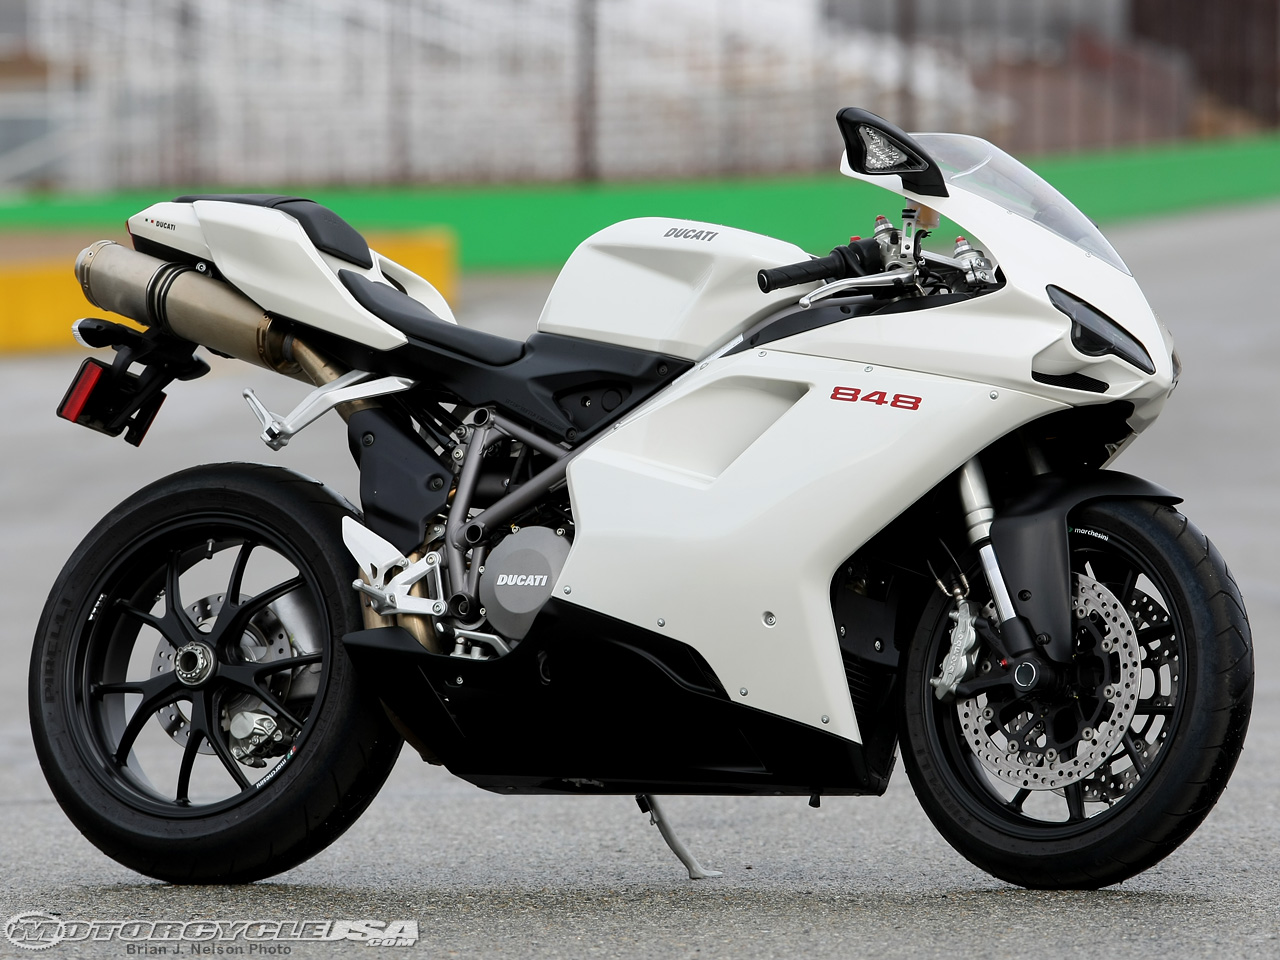 Ducati 848 2010 wallpapers #12450